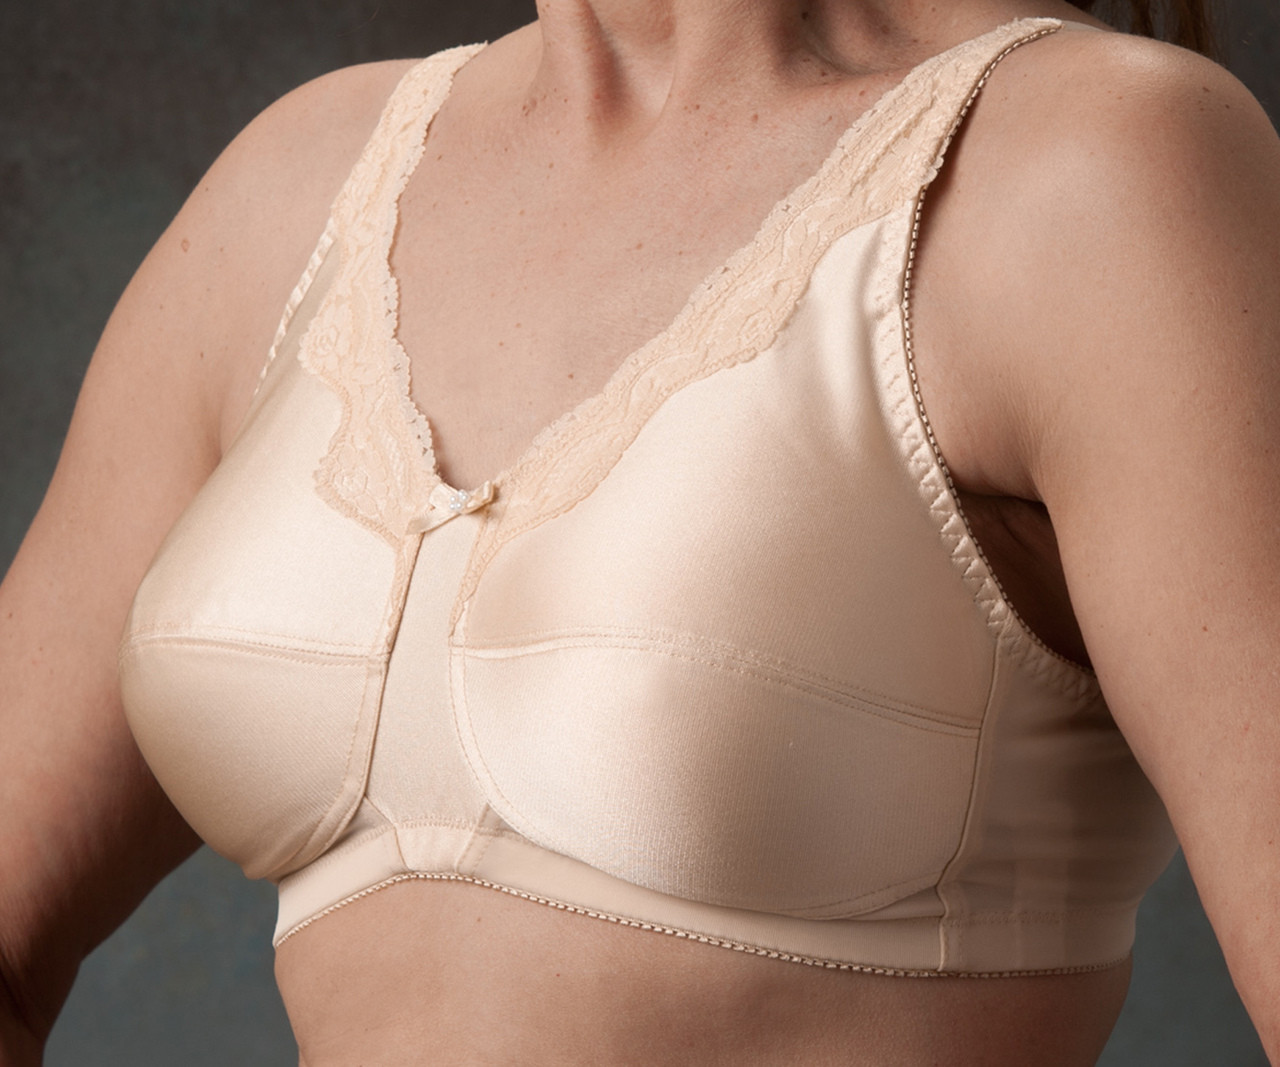 dde06c845a4ca Nearly Me 680 Lace Accent Mastectomy Bra - MastectomyShop.com